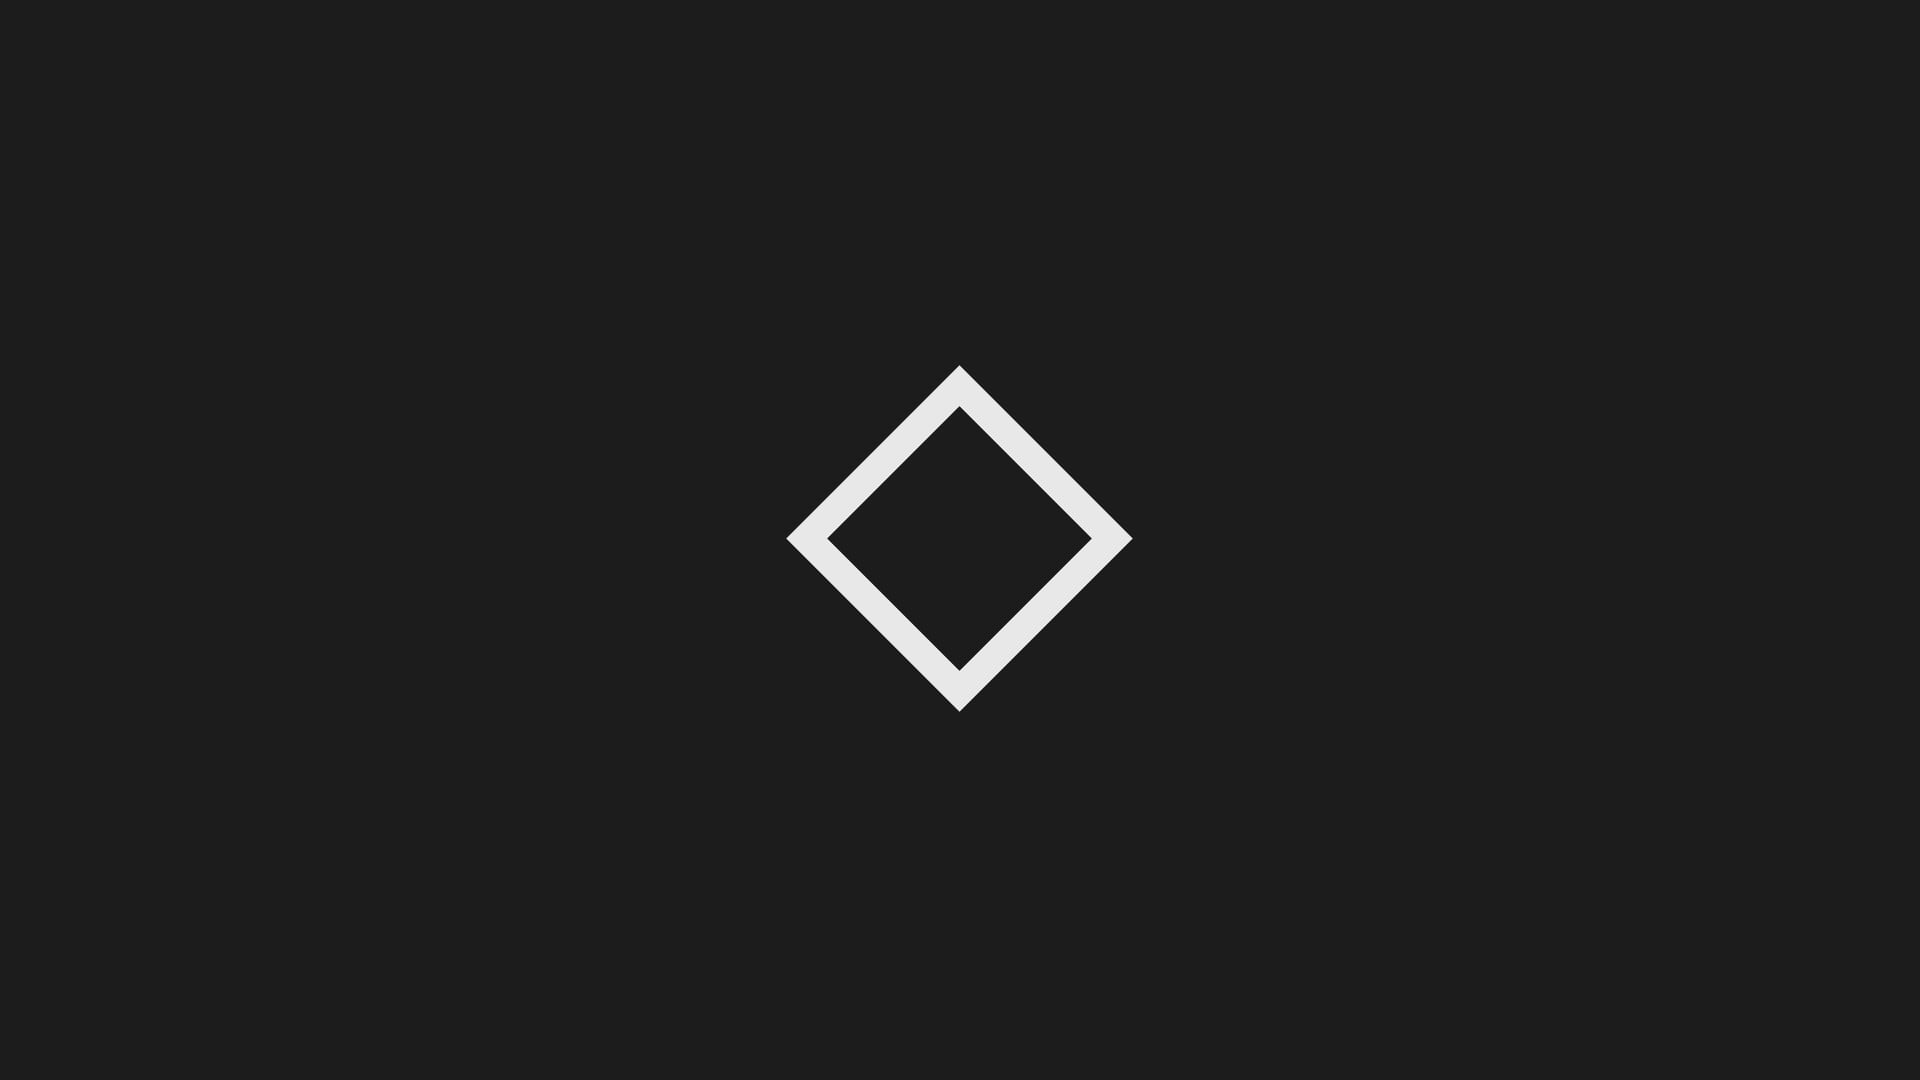 Square white logo, black, lozenge, abstract, minimalism HD